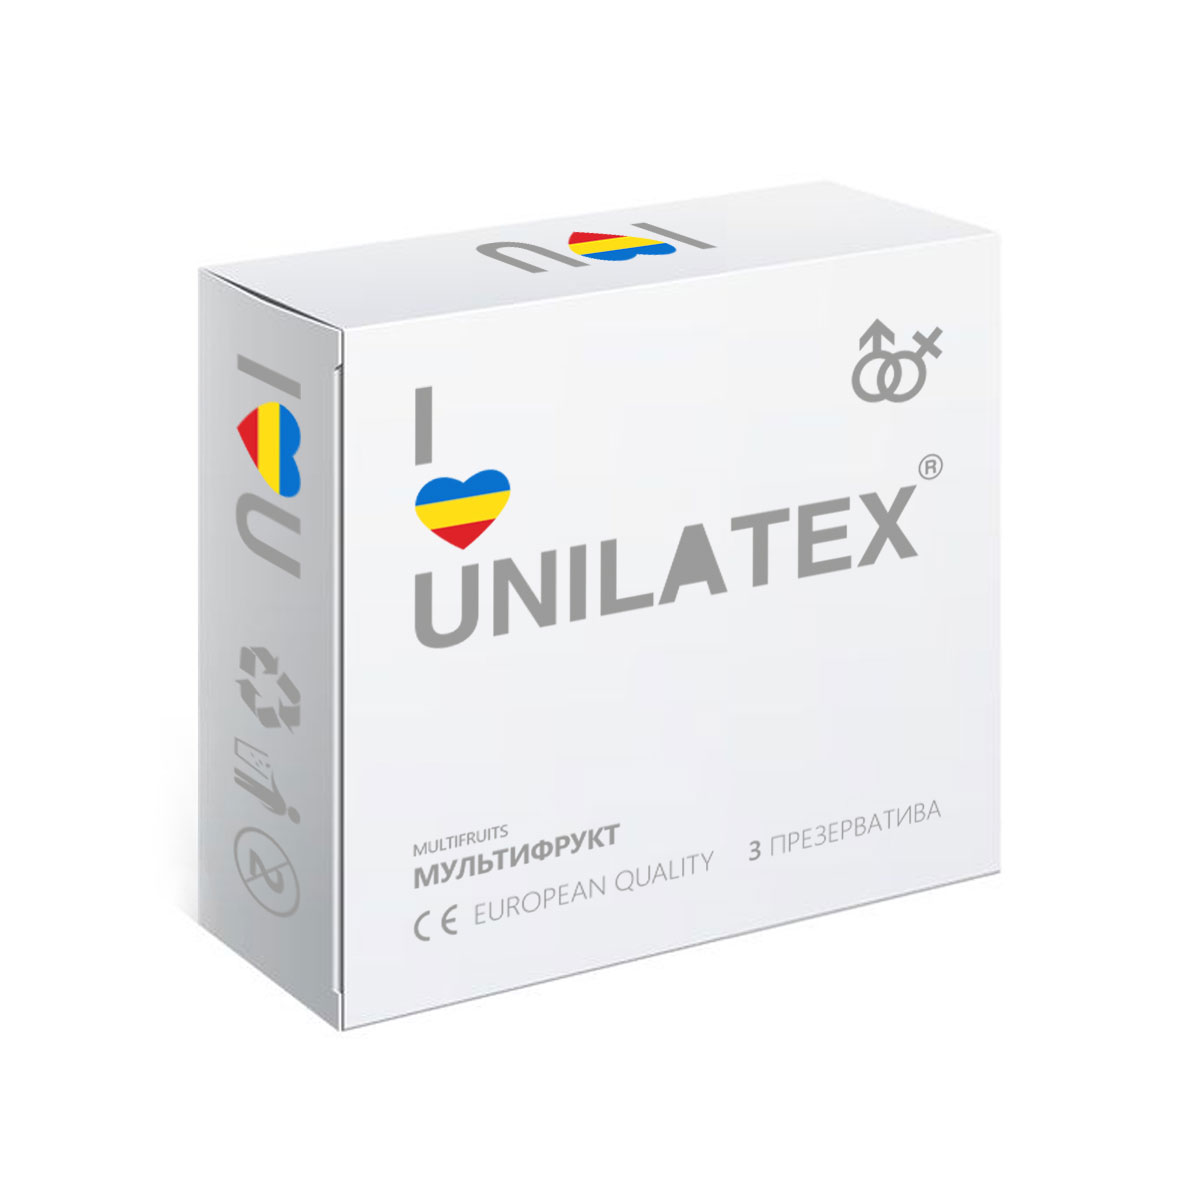 Презервативы Unilatex Multifruits, 3 шт baile finish girl брюнетка секс кукла